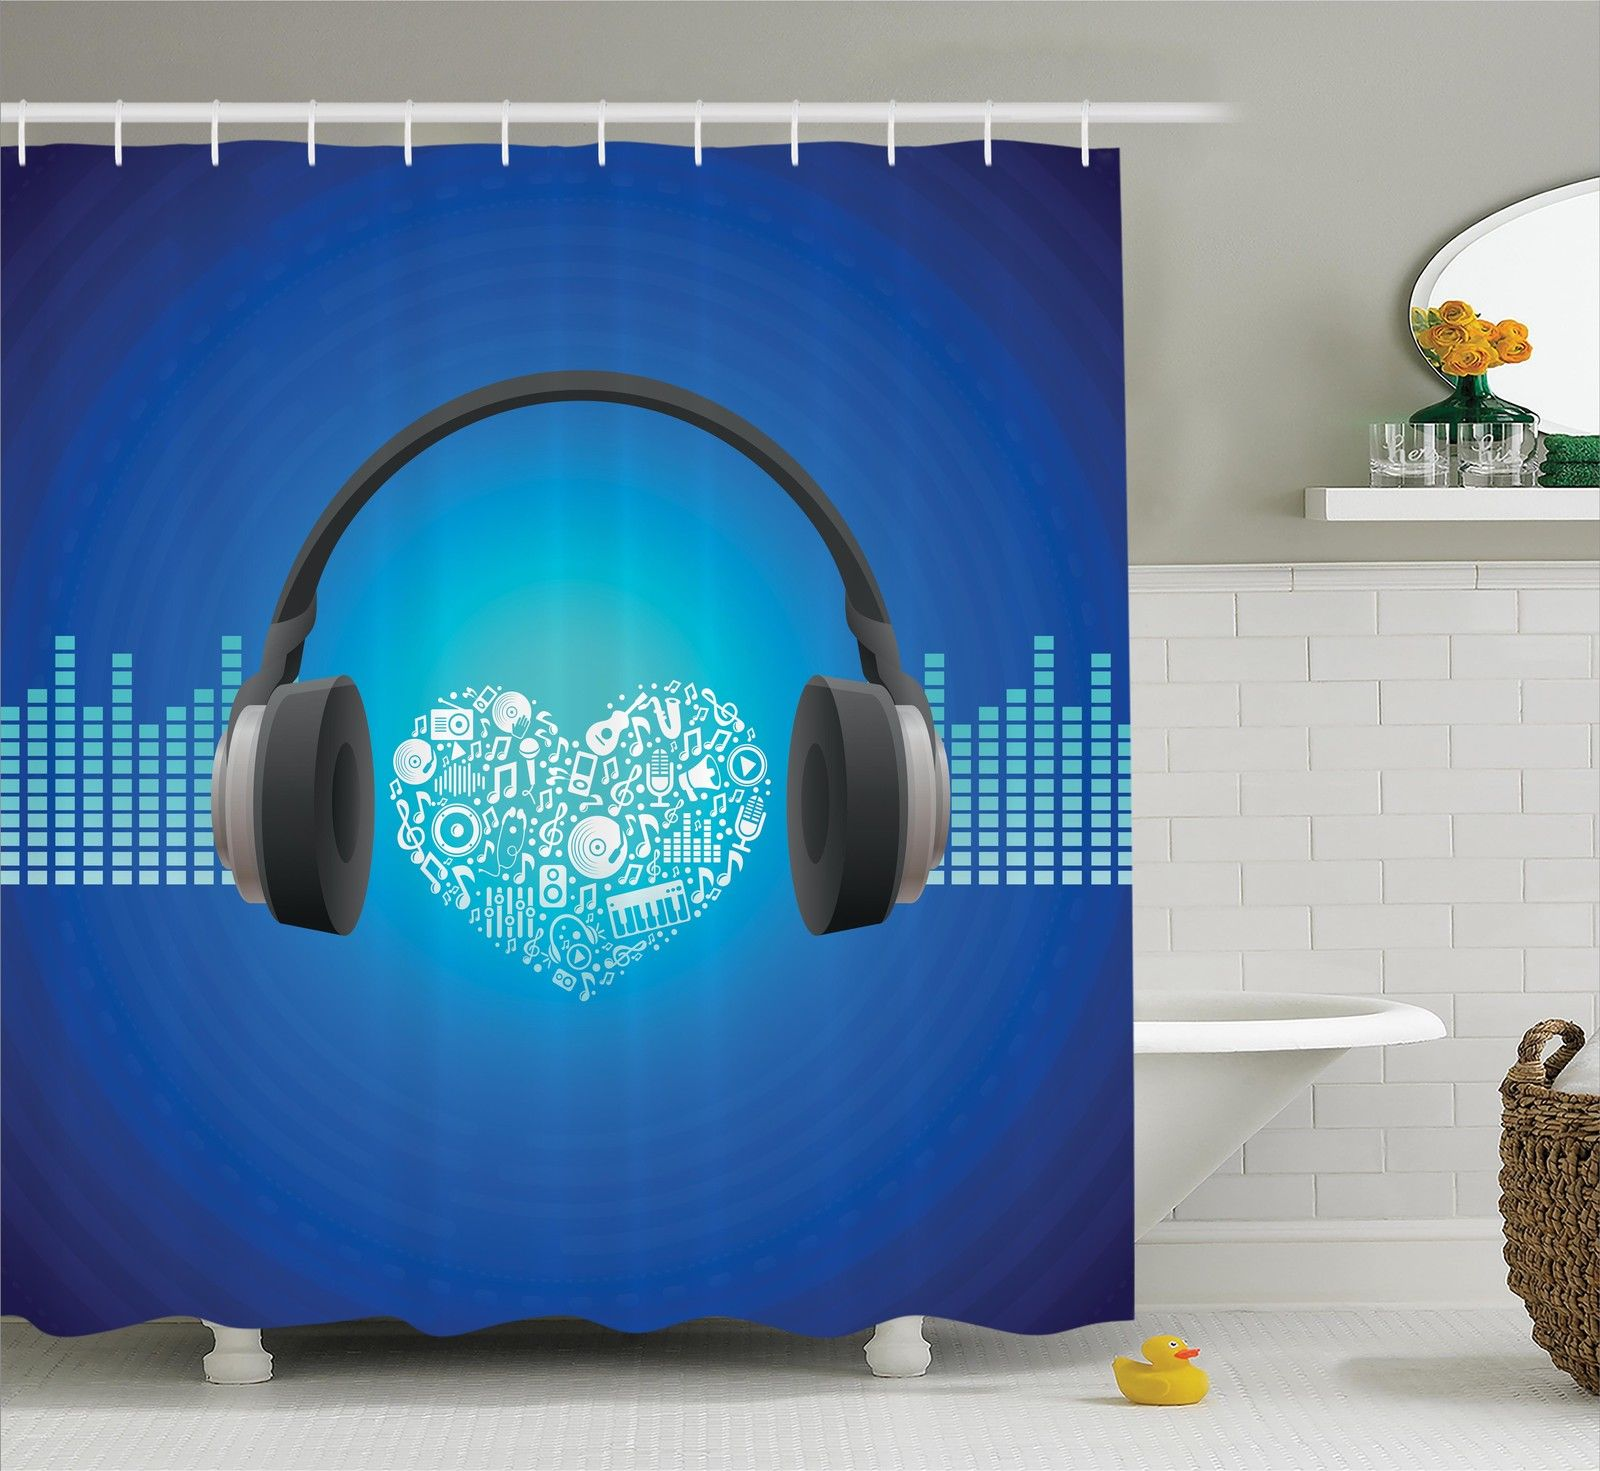 how to listen to music in the shower with headphones